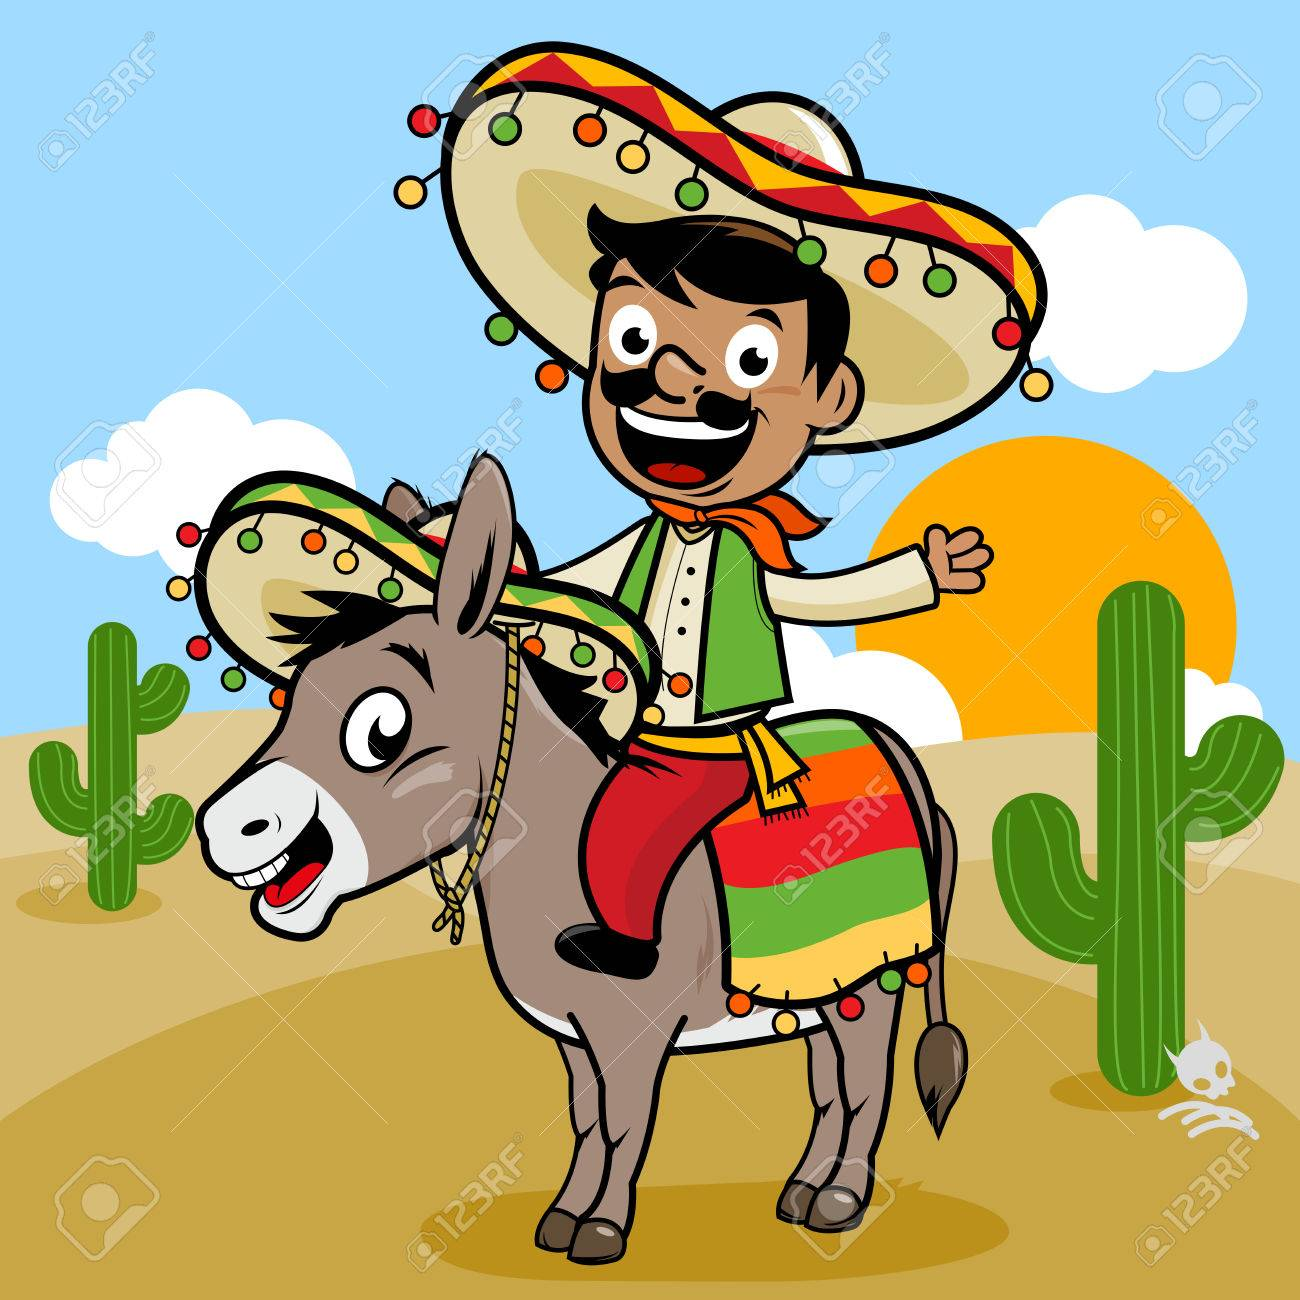 Mexican man riding a donkey in the desert.